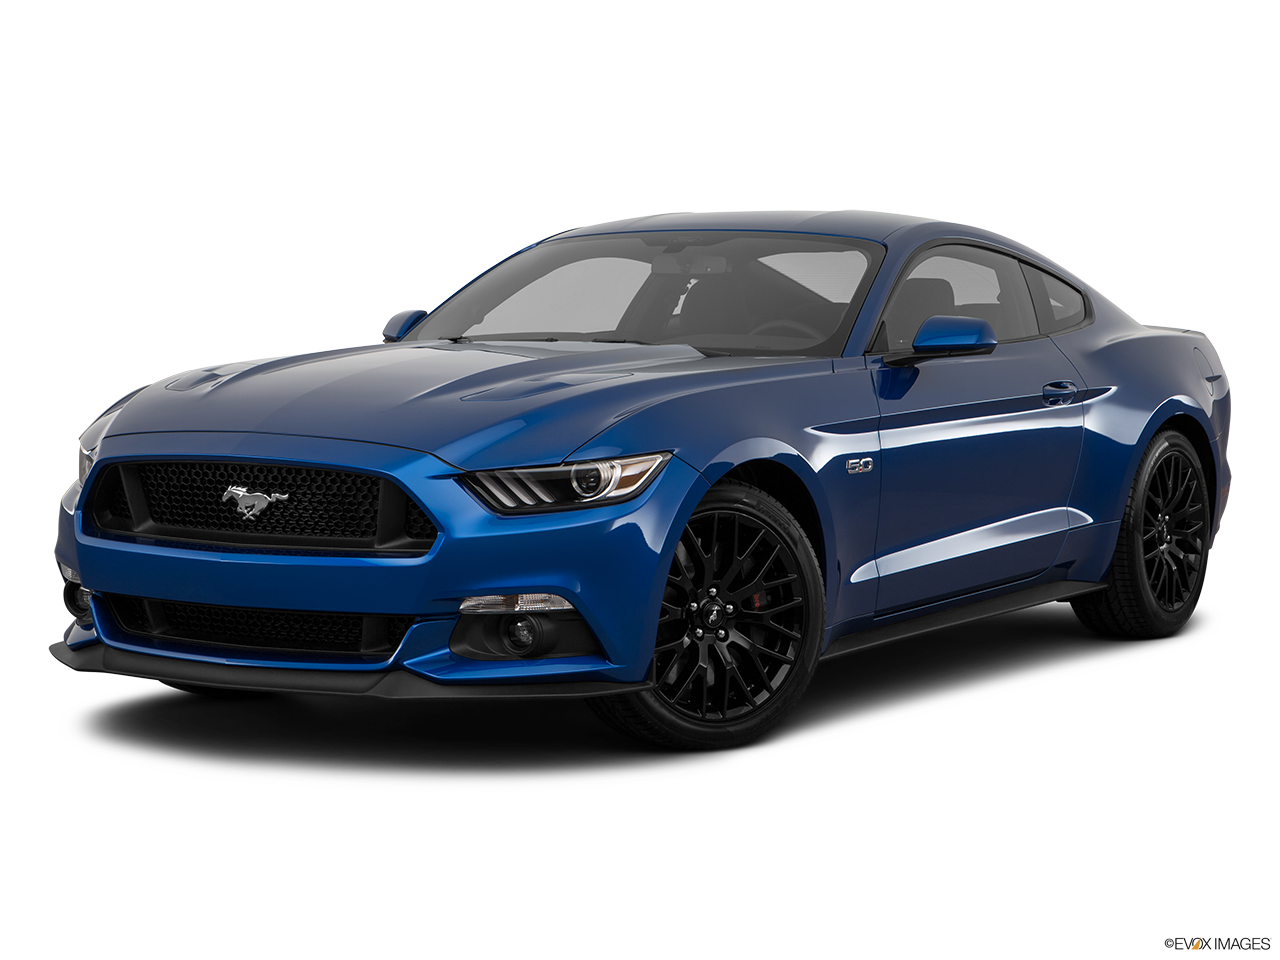 Test Drive A 2017 Ford Mustang at Huntington Beach Ford in Huntington Beach